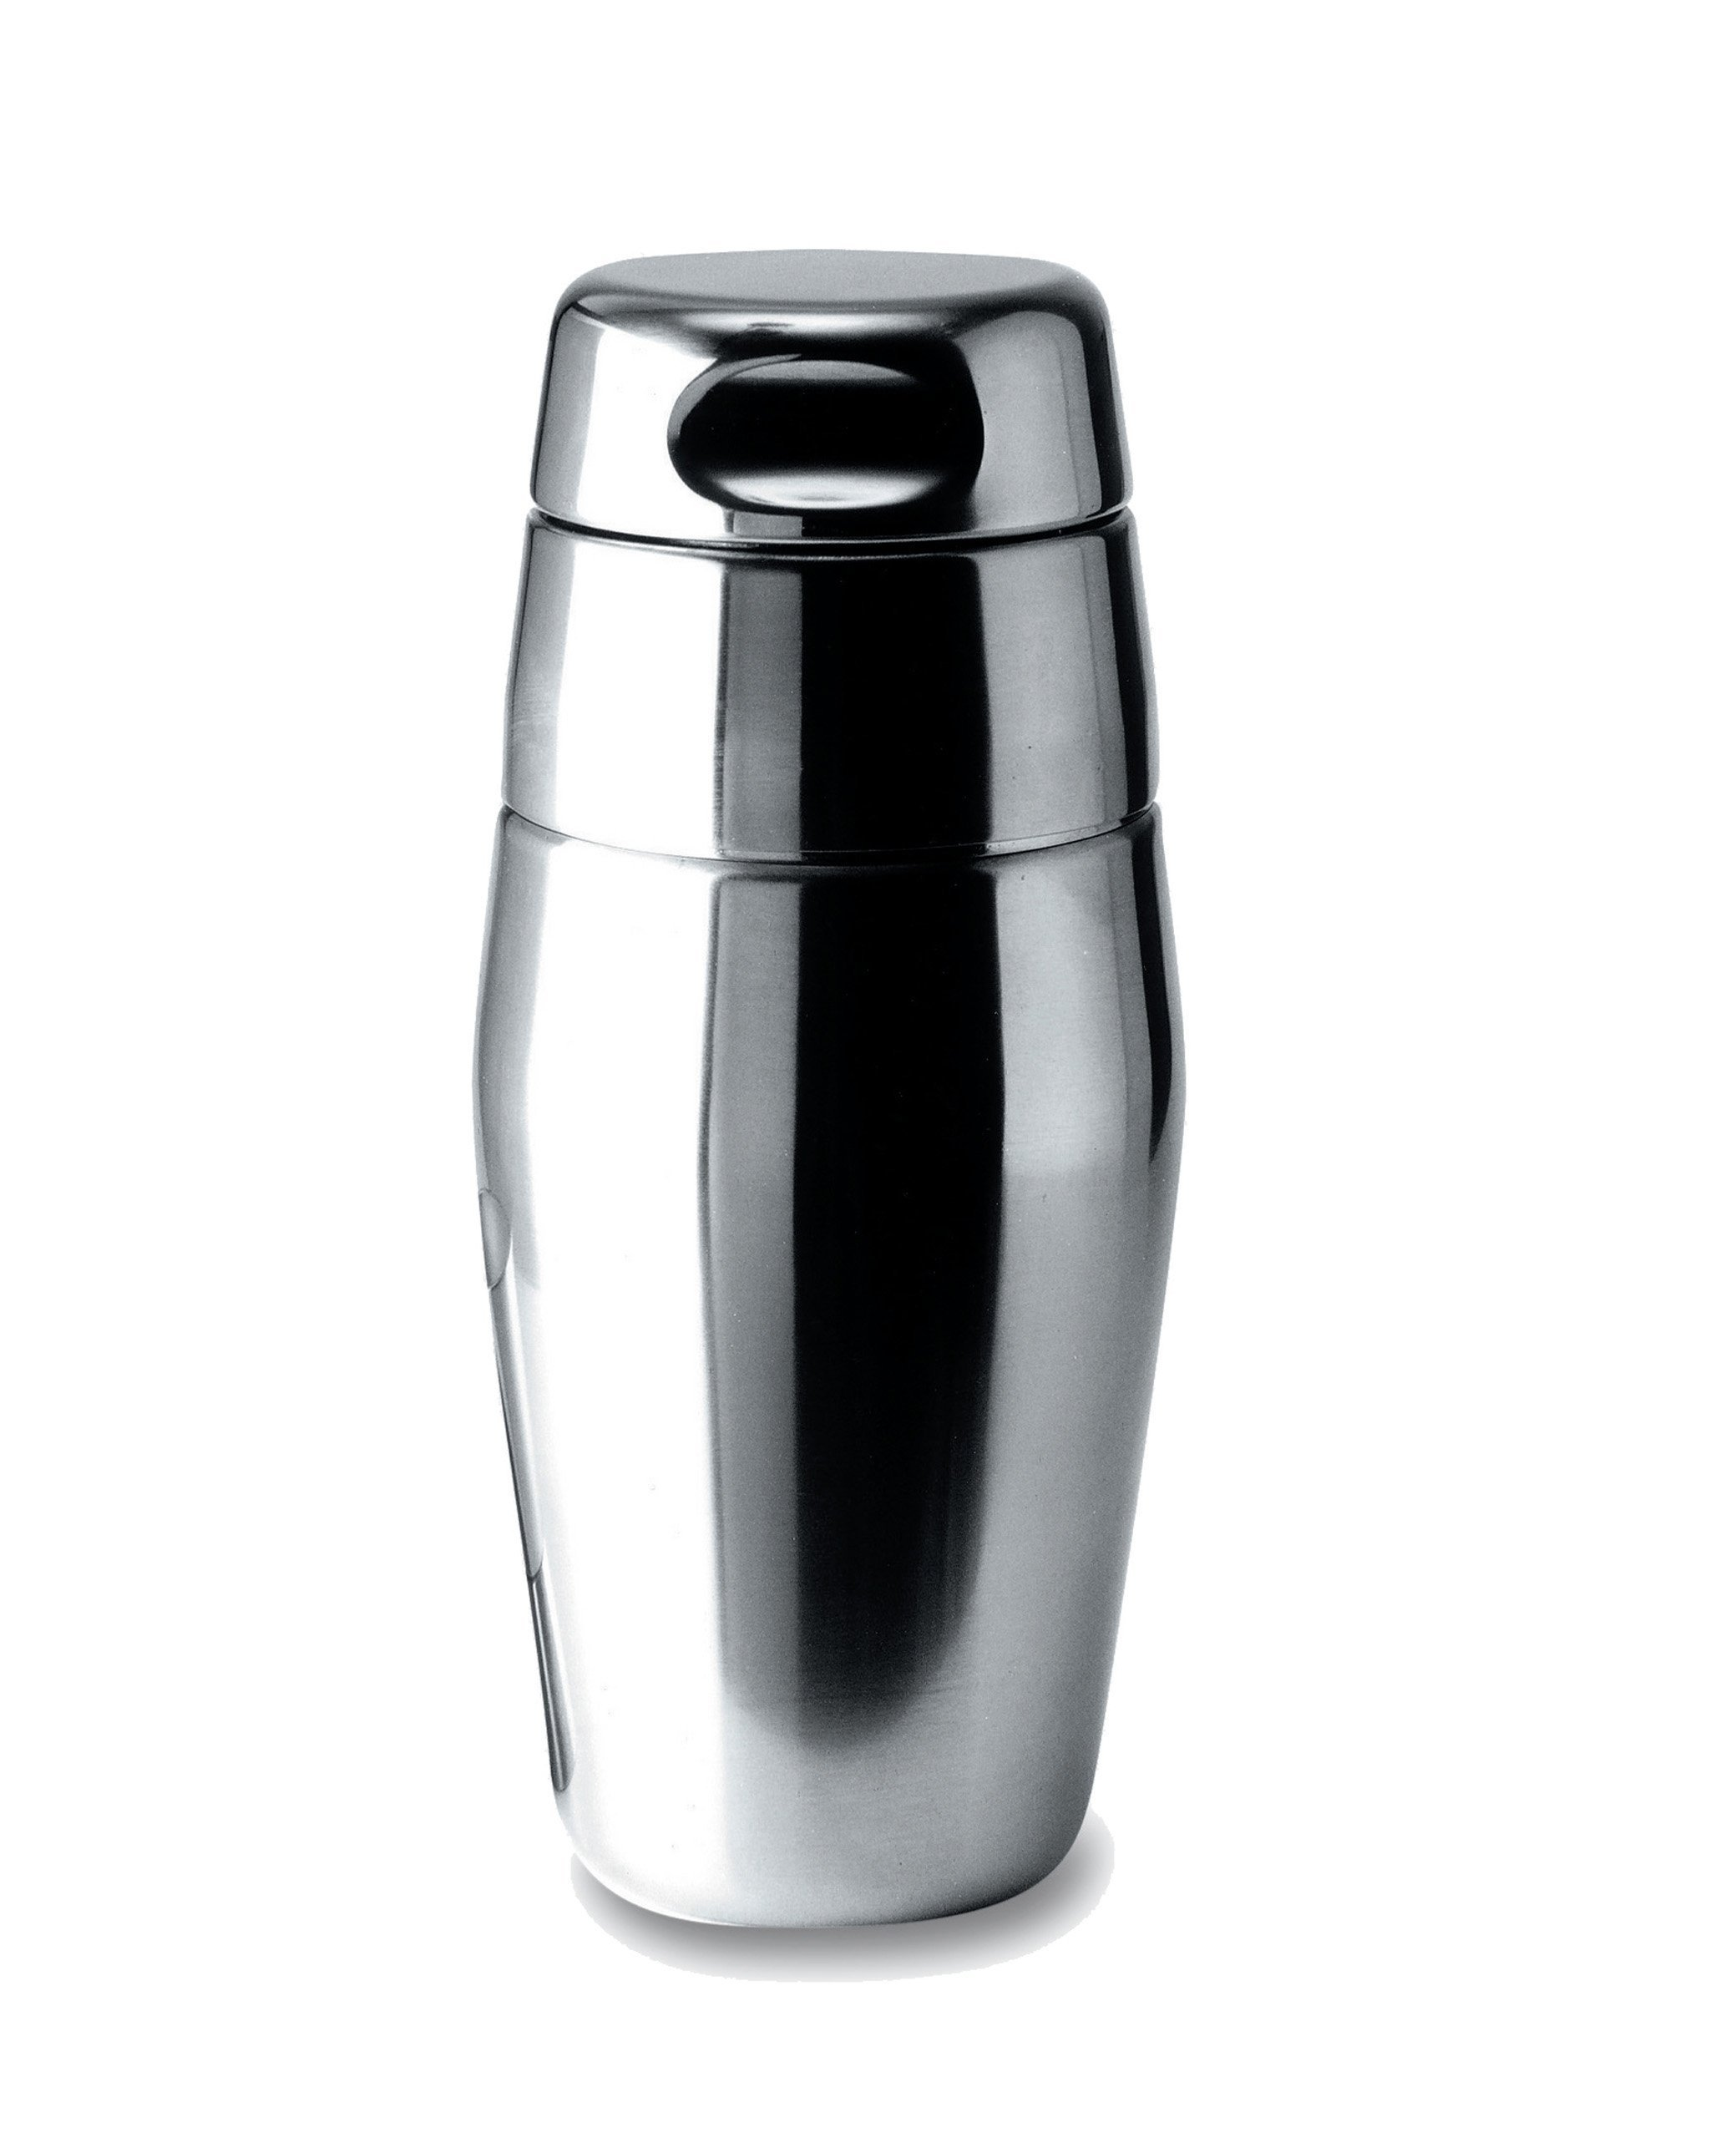 Alessi 17-Ounce Cocktail Shaker, Satin Finish